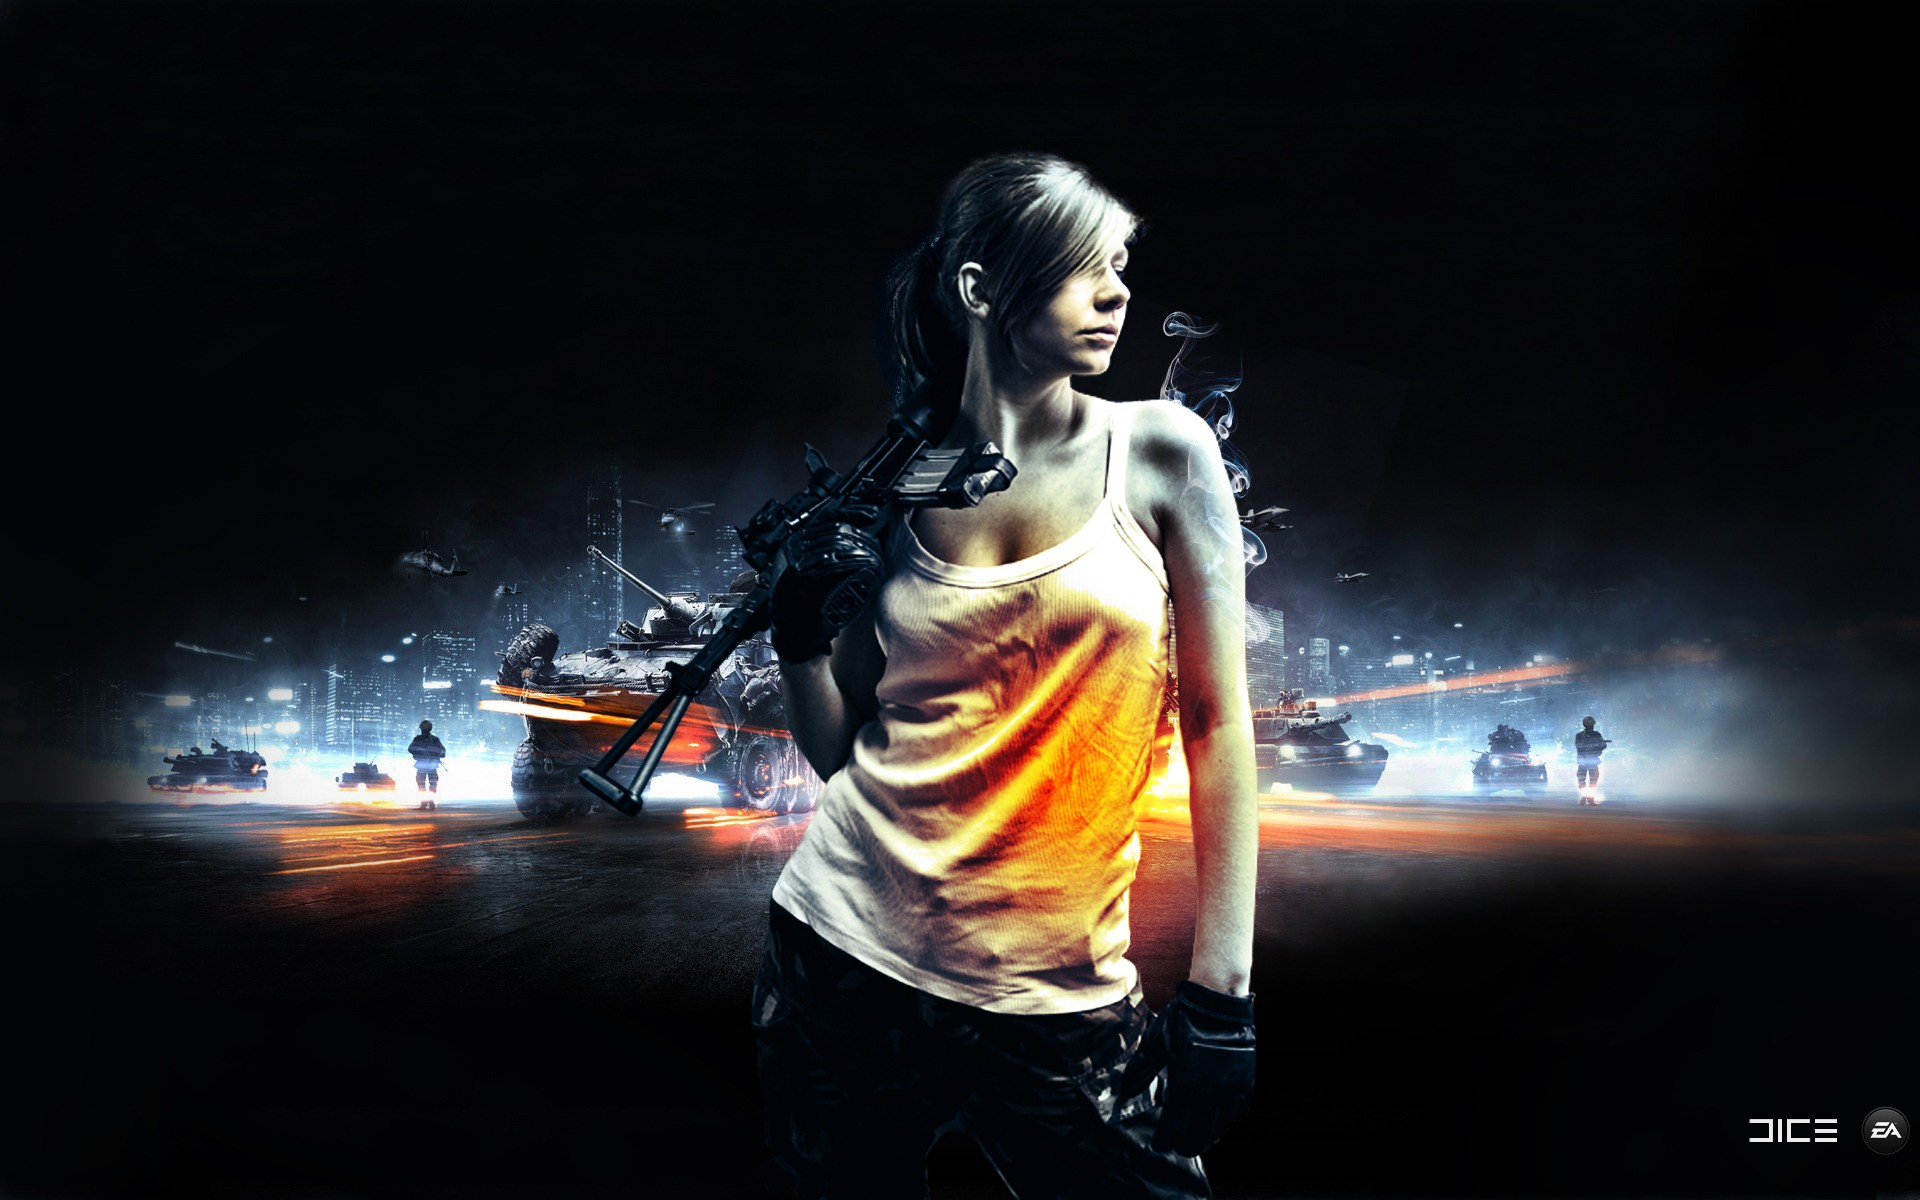 battlefield 3 full hd wallpaper and background image | 1920x1200